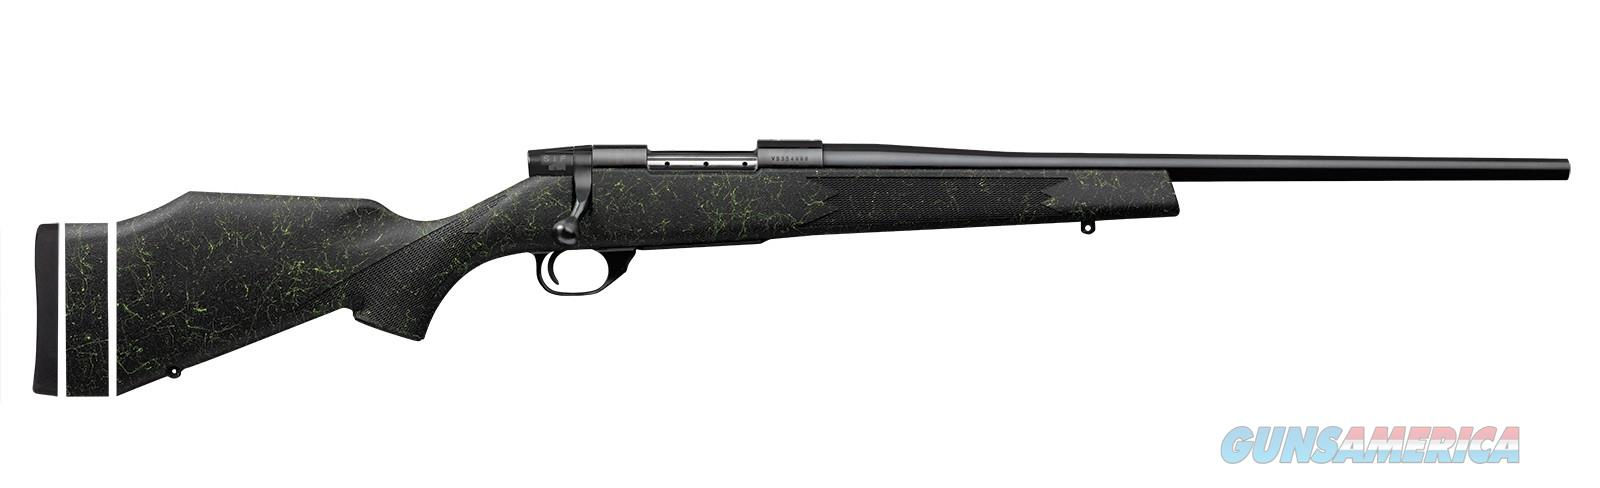 Weatherby WBY-X™ VANGUARD® VOLT  243 win  Guns > Rifles > Weatherby Rifles > Sporting